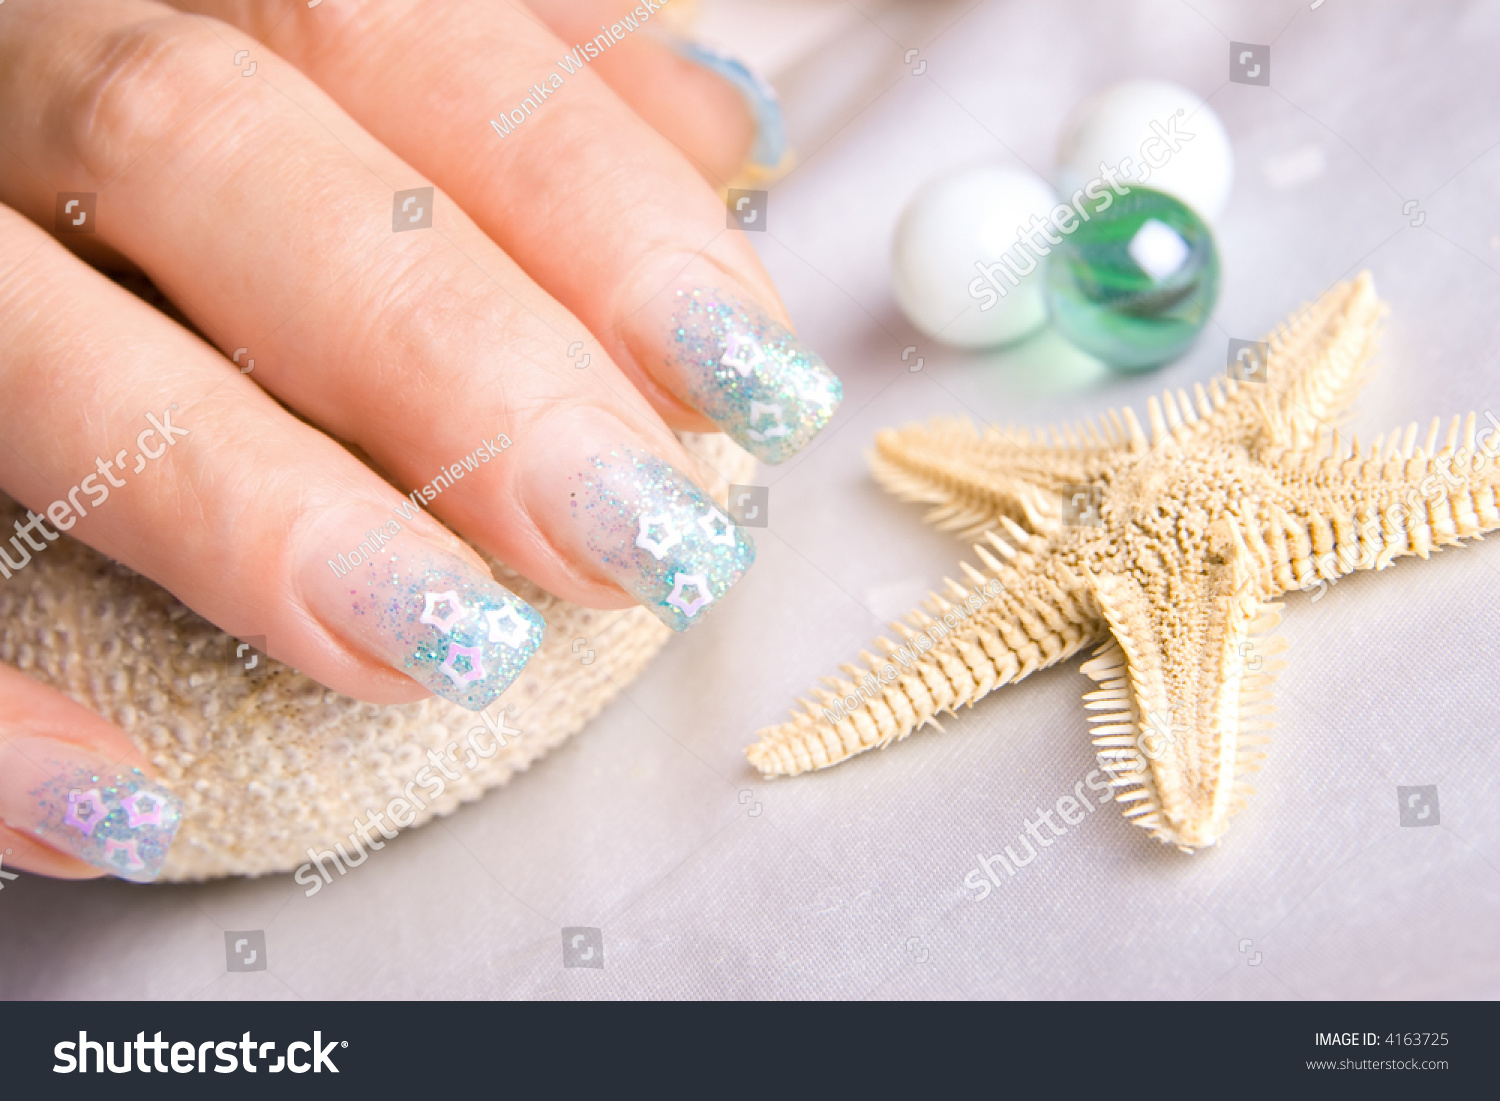 Nails Decorated With Nice Blue Enamel. Stock Photo 4163725 ...